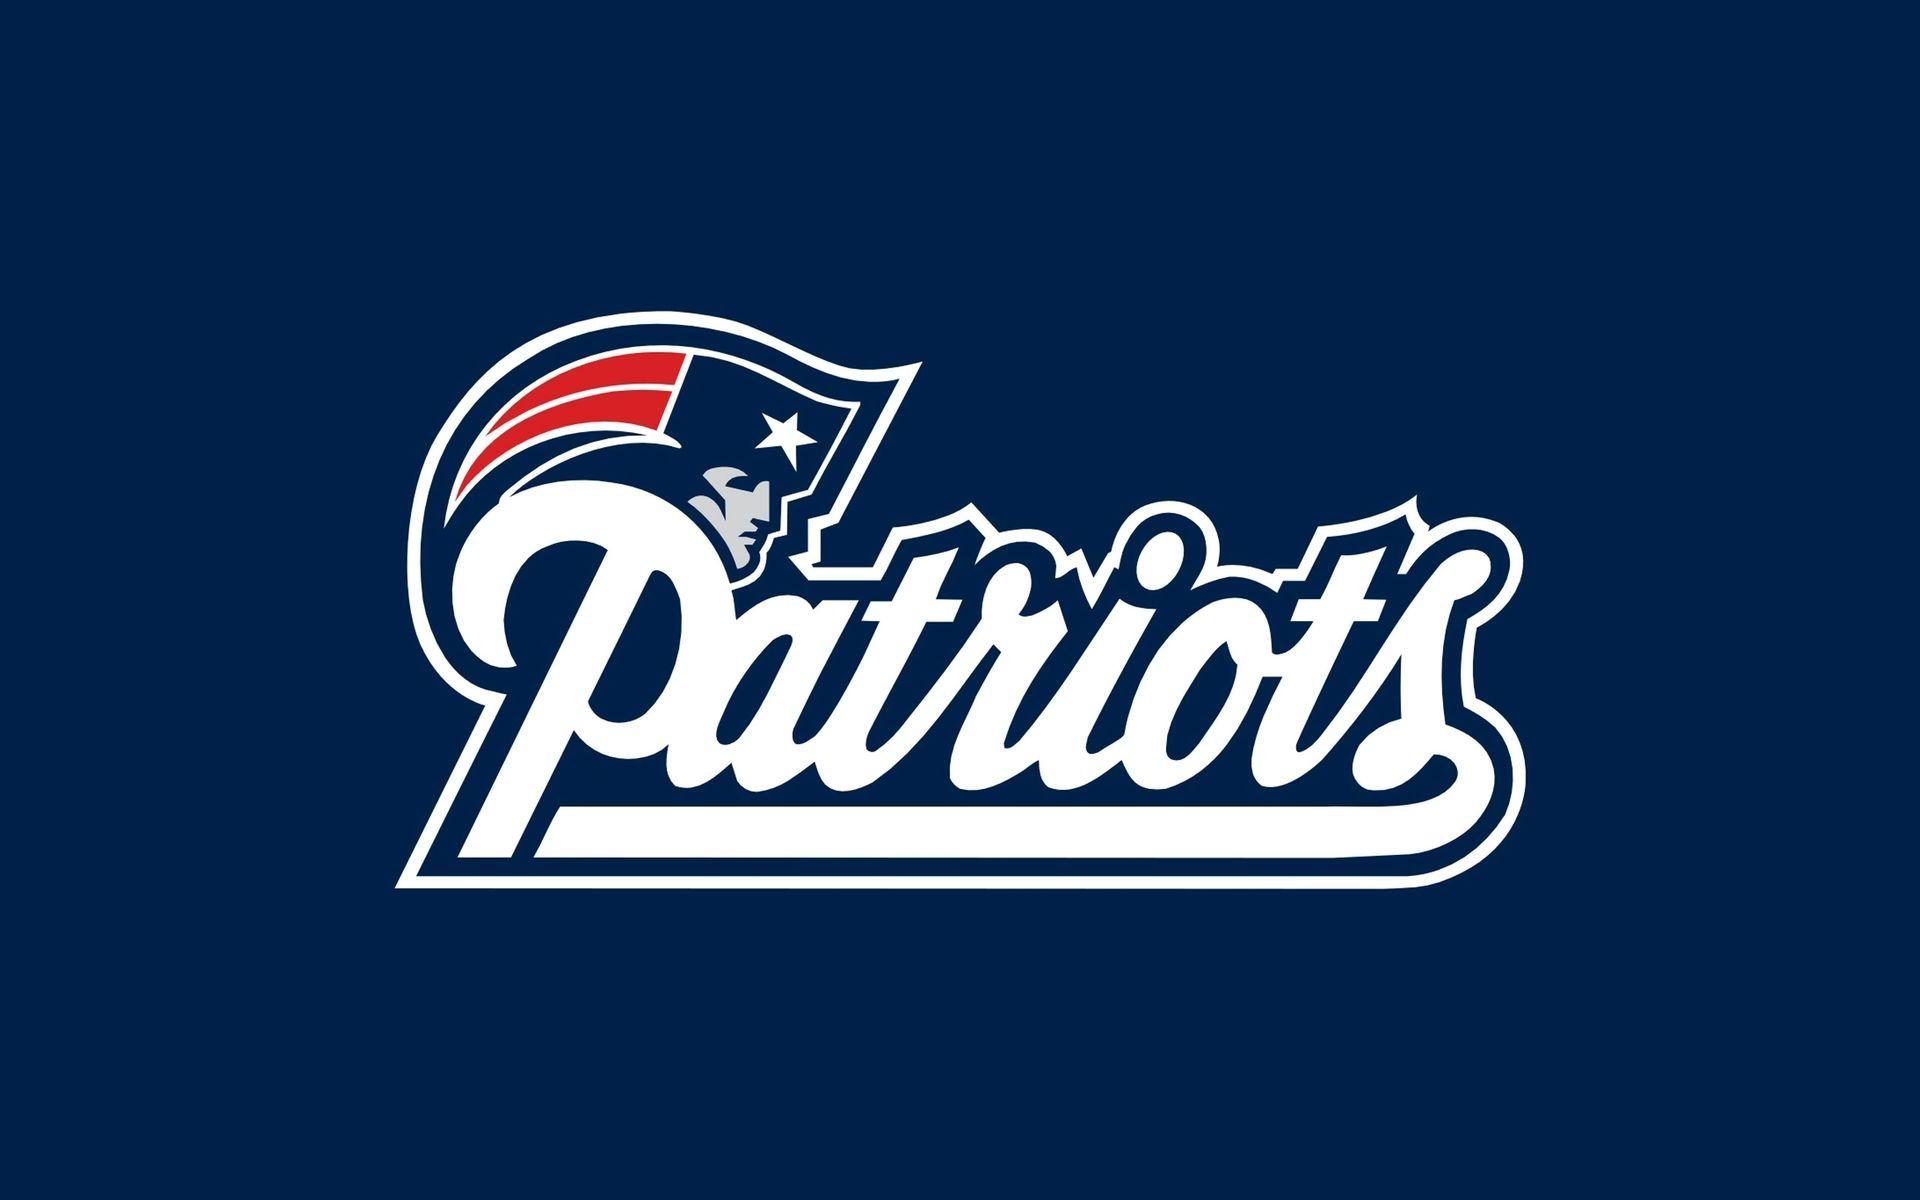 New England Patriots Logo Wallpapers HD 55966 1920x1200 px